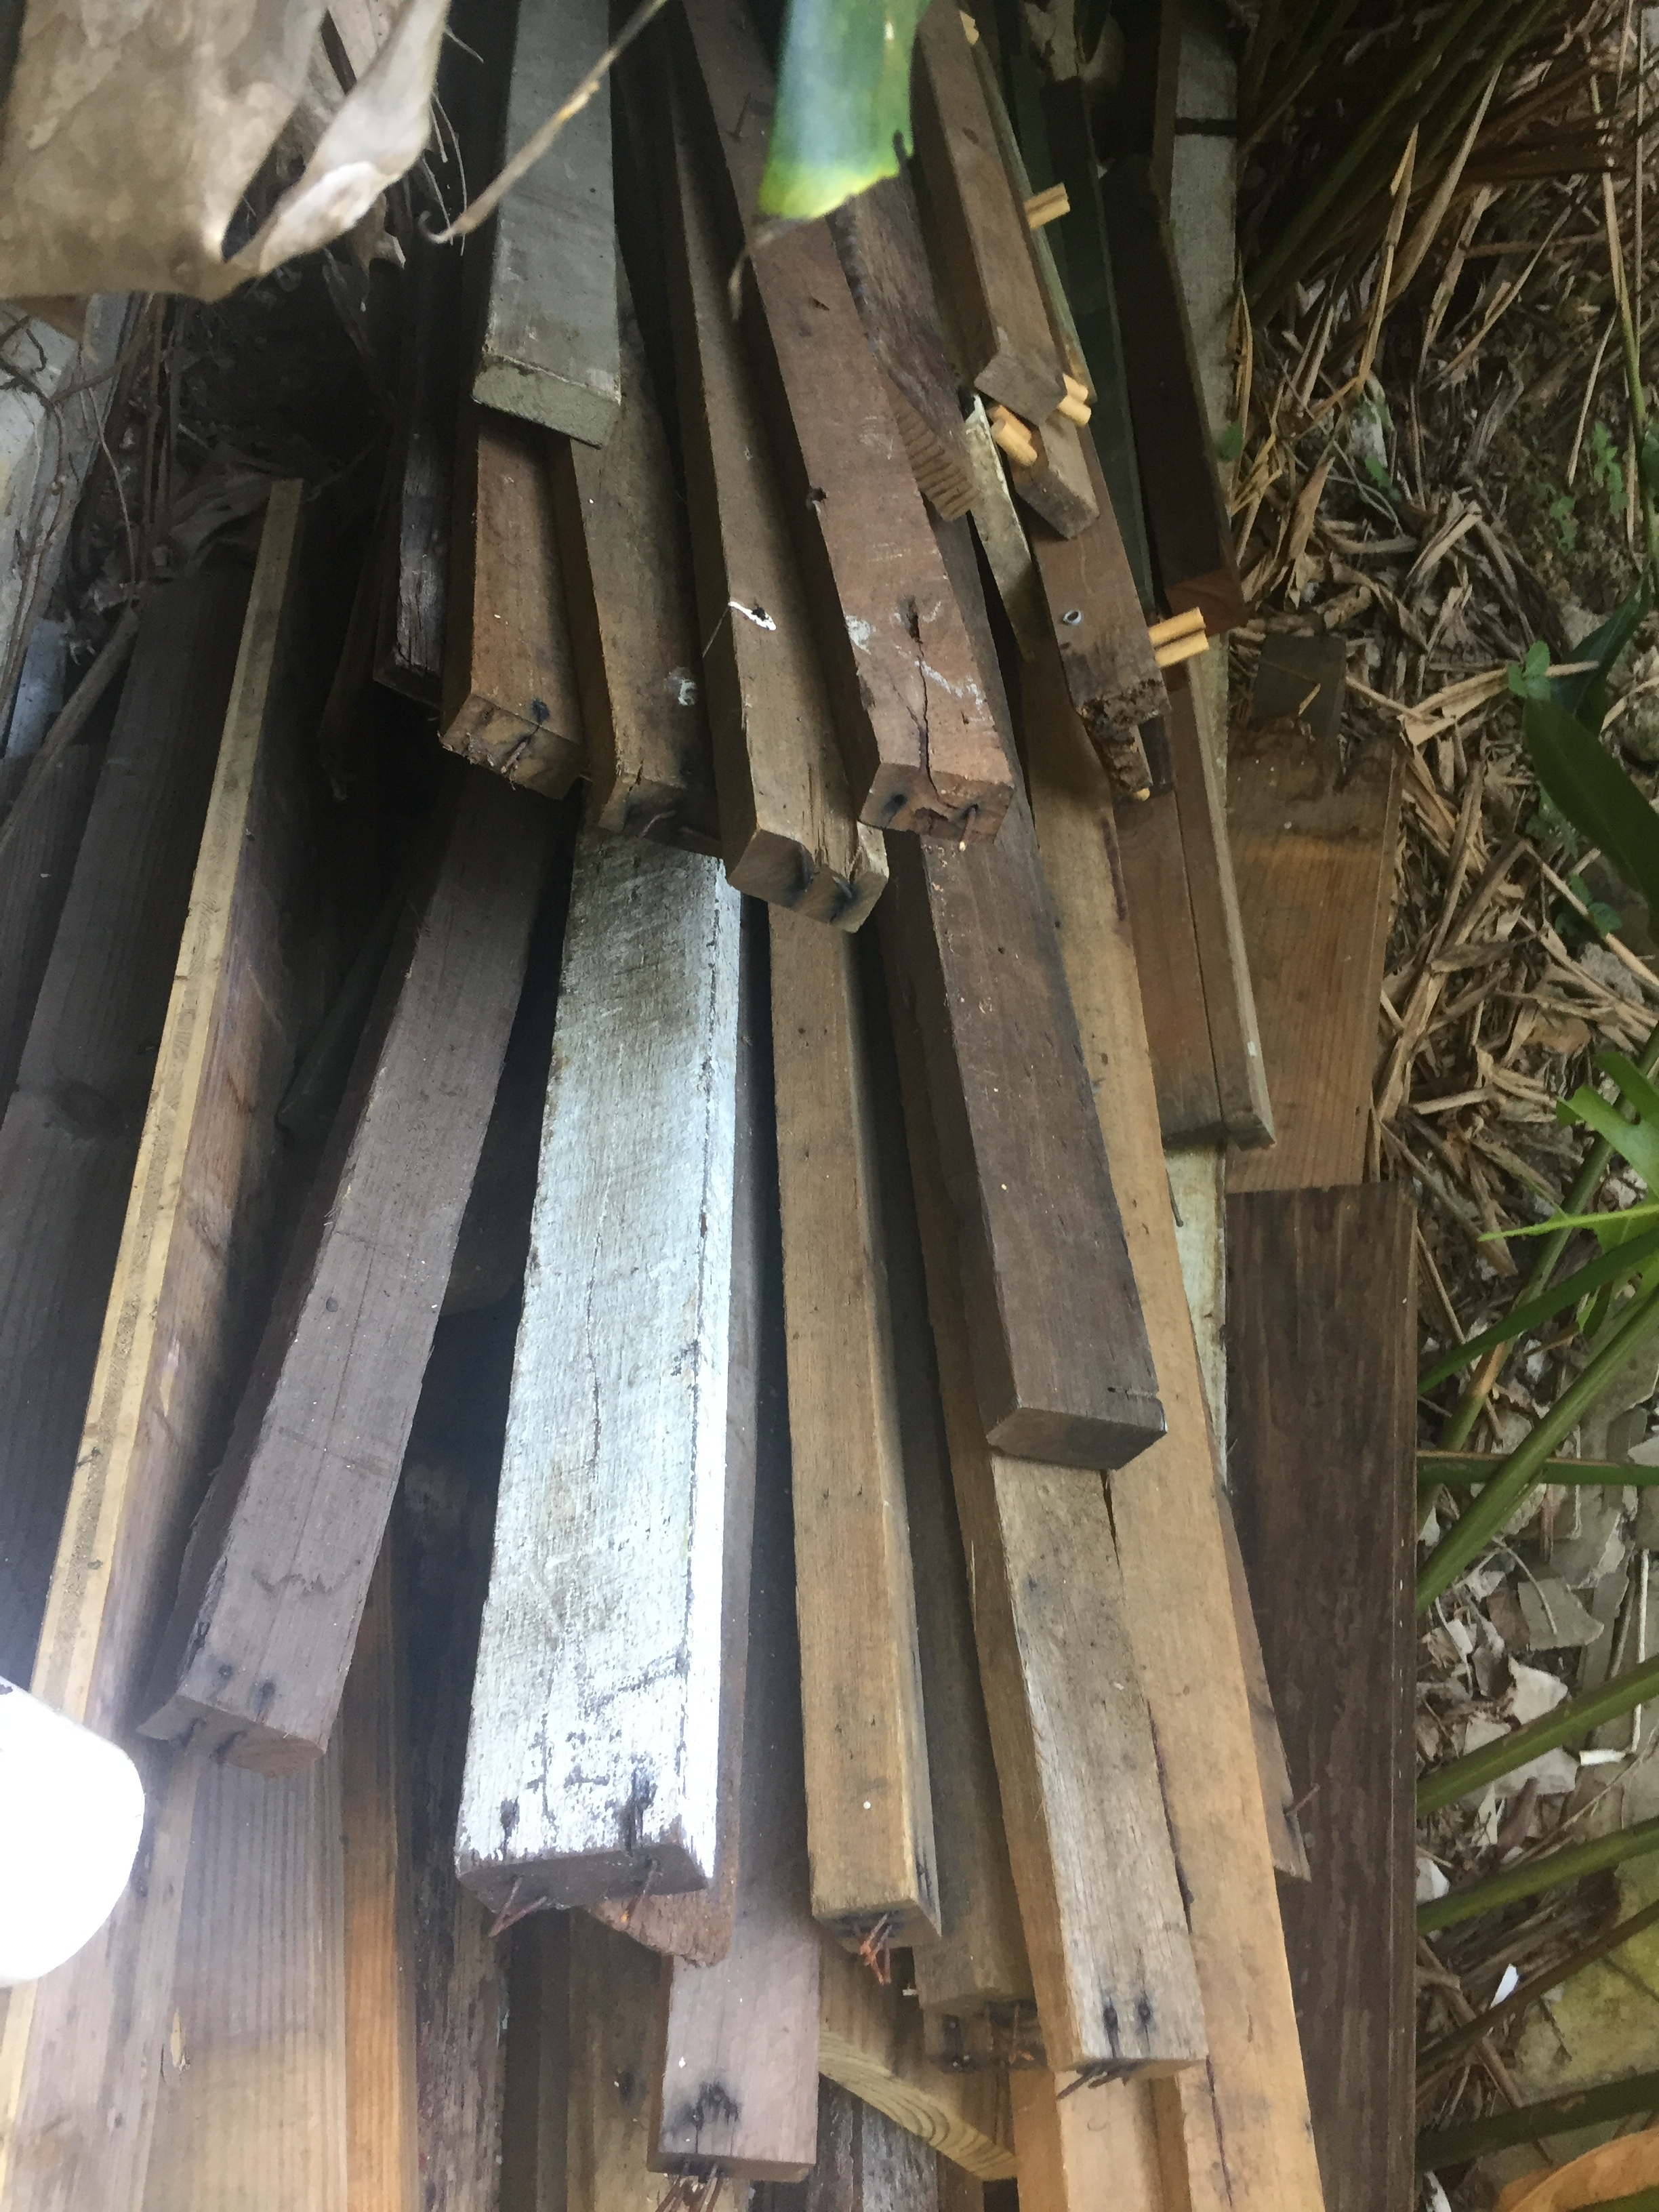 A stack of Aussie hardwoods - a bit of work to de-nail, but otherwise in good condition.